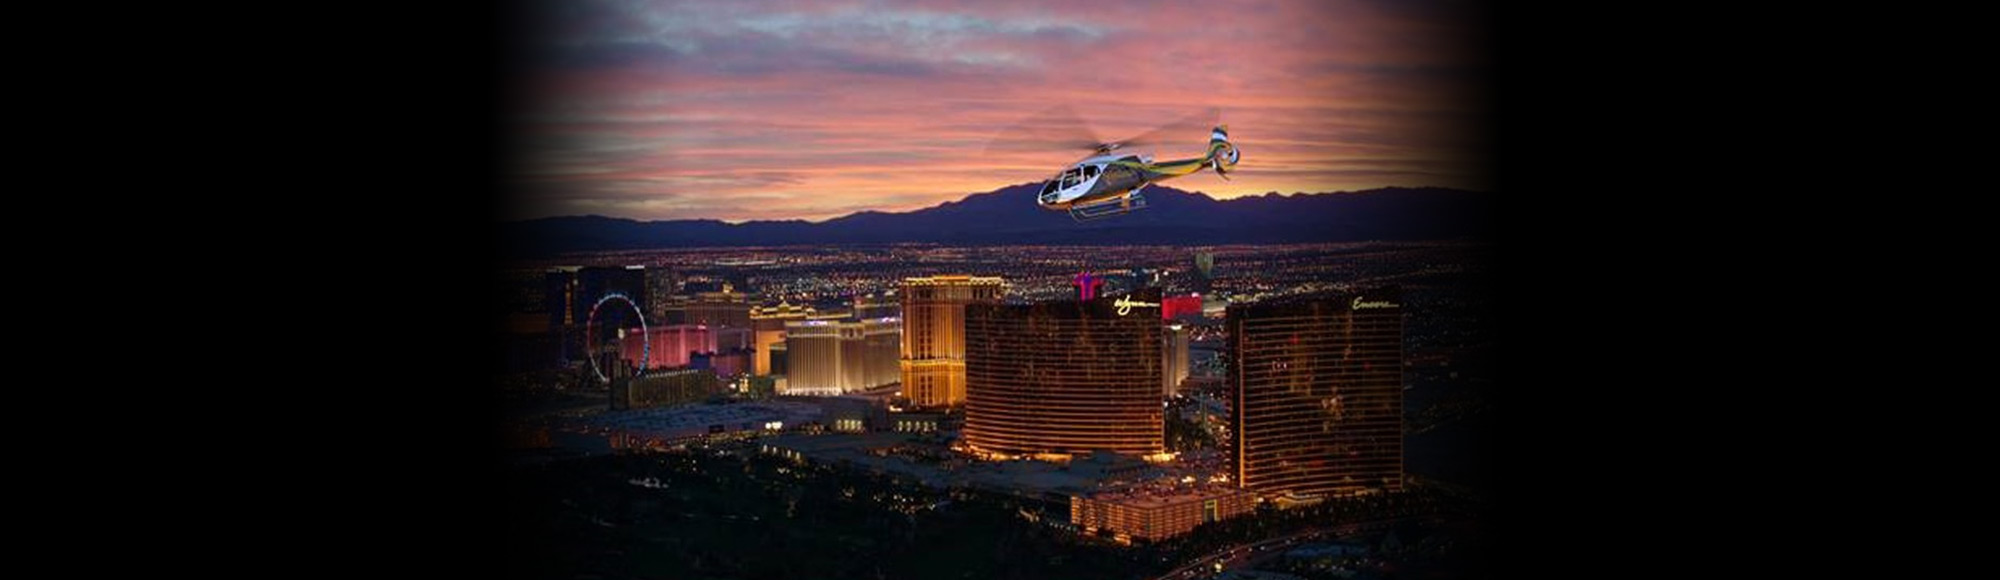 City Lights Helicopter Strip Tour - Prices